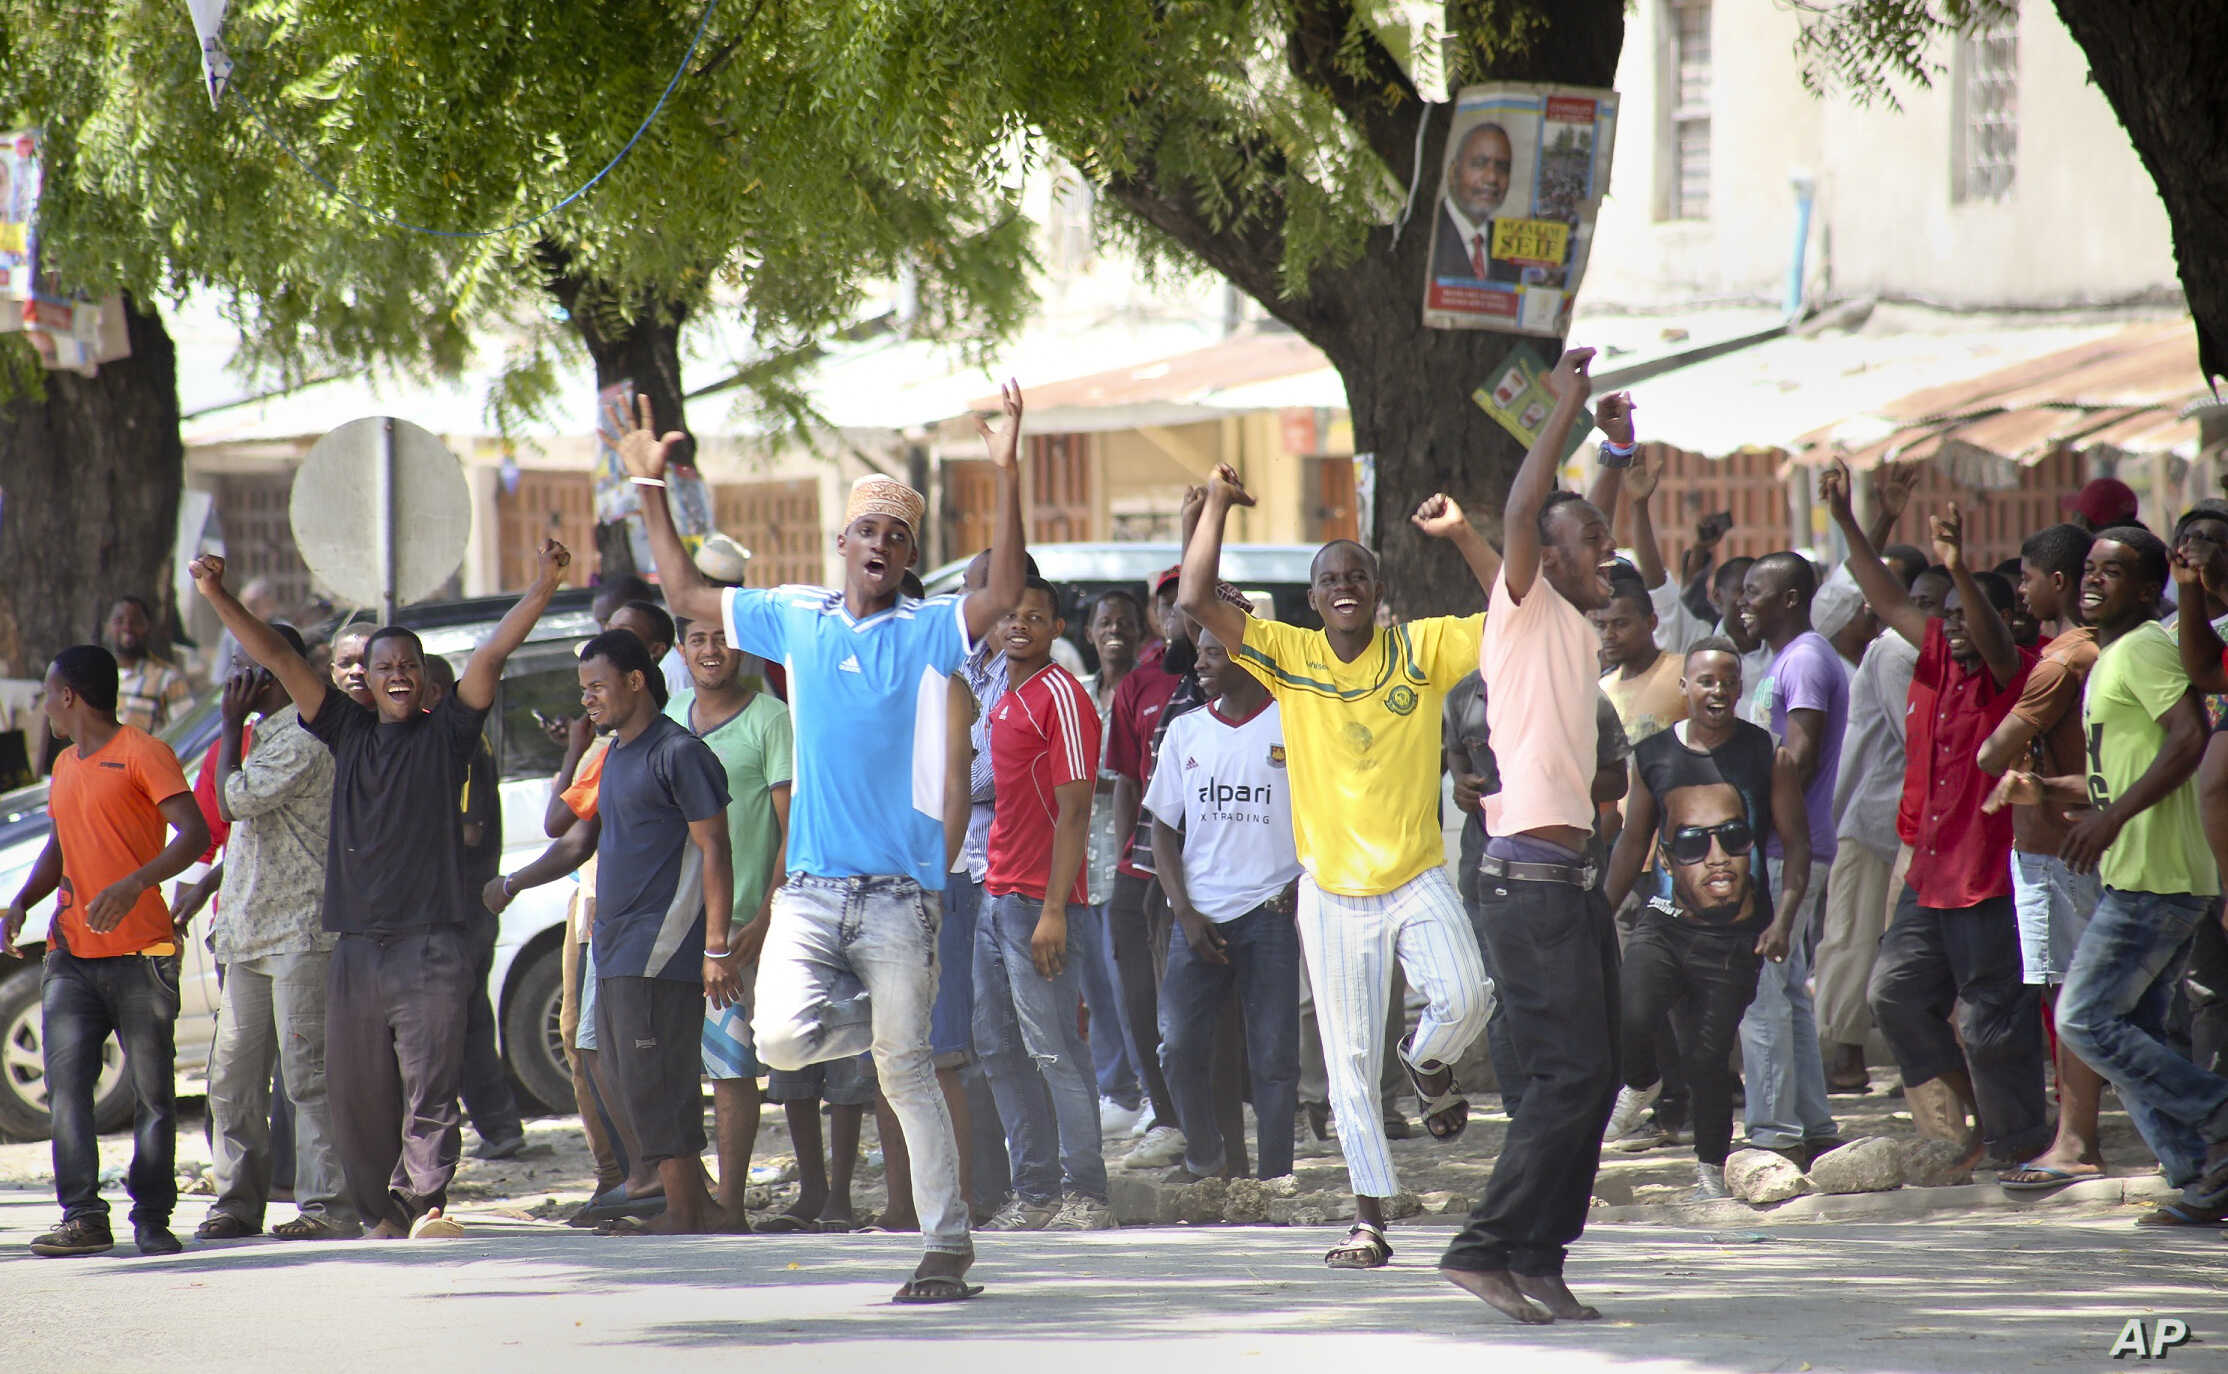 In this photo taken Monday, Oct. 26th, 2015 and made available Wednesday, Oct. 28th, 2015, youths supporting the opposition party dance and chant, predicting a win for their candidate, outside the Electoral Commission office in Stone Town, Zanzibar, ...